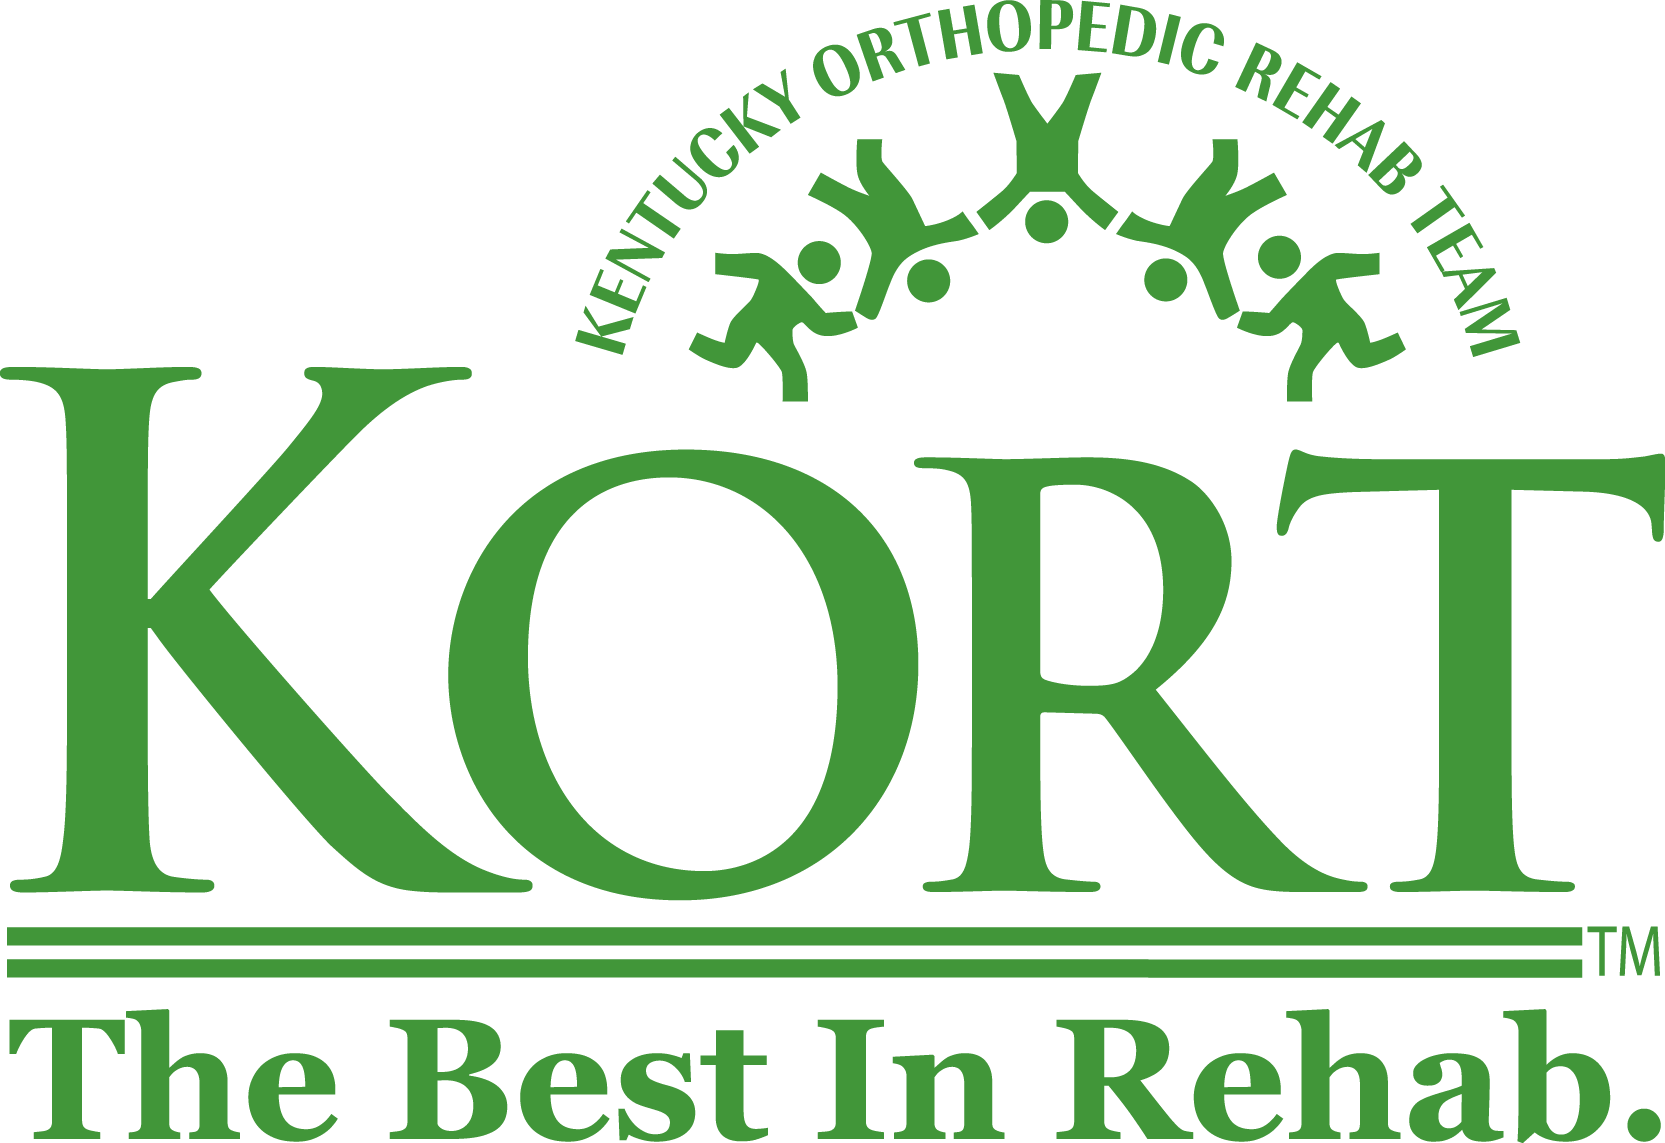 KORT Physical Therapy.png